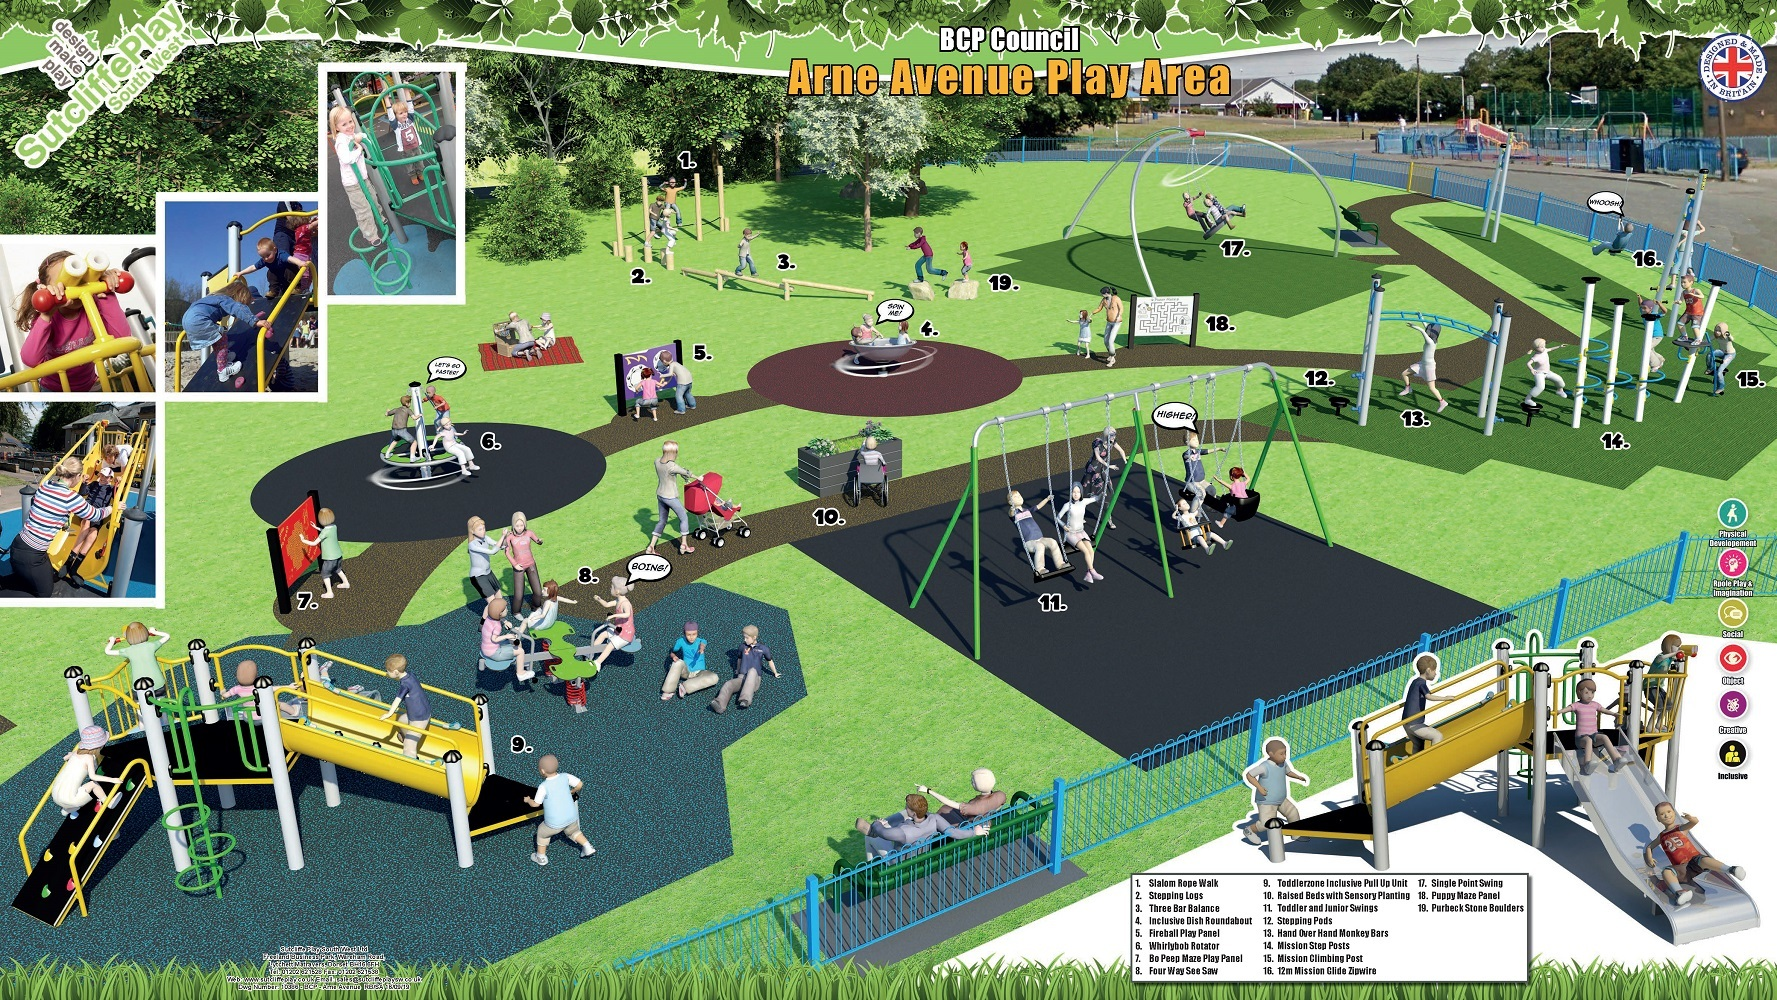 Details of new play park for Poole revealed